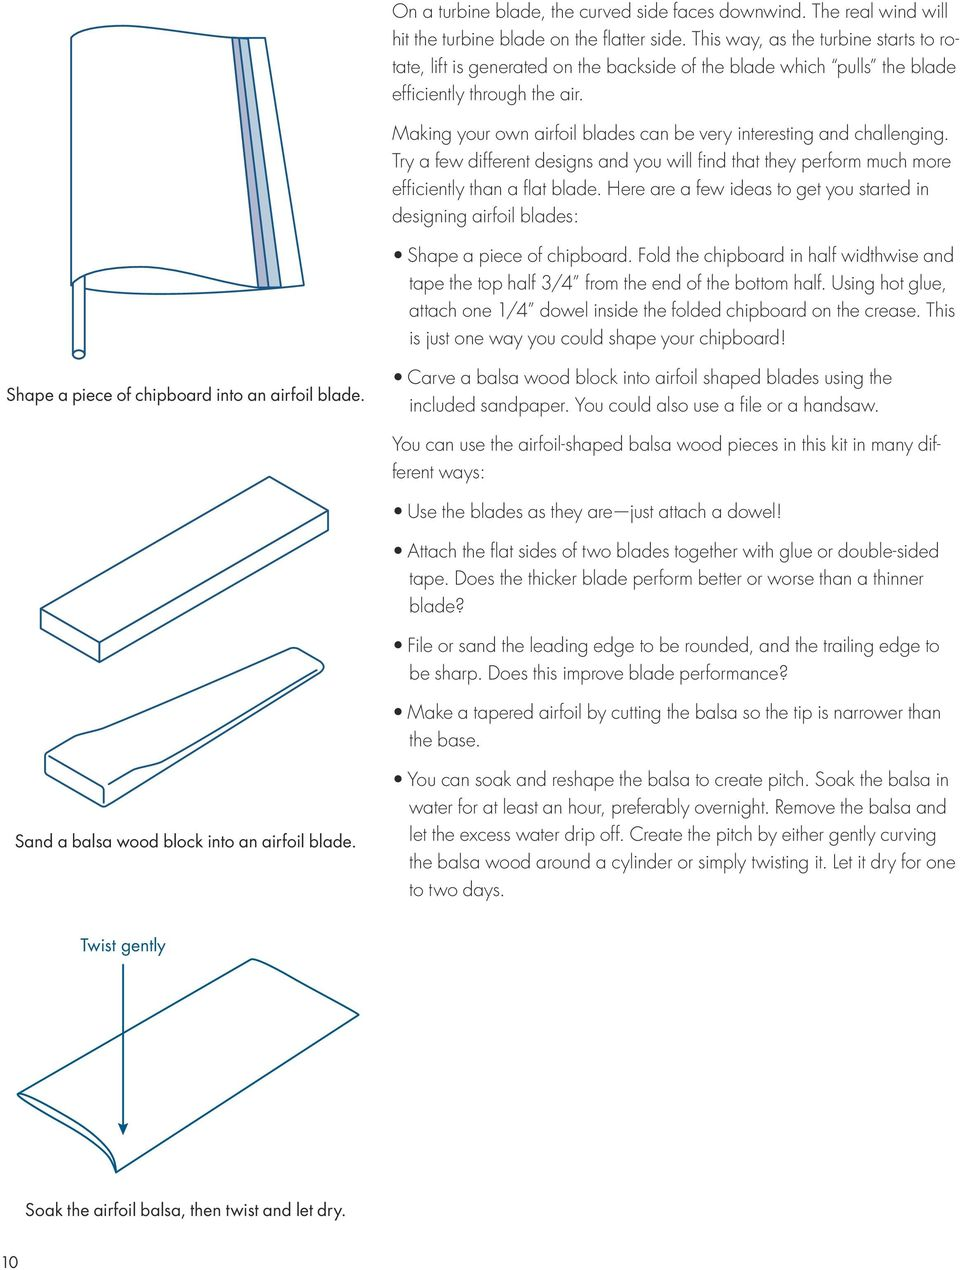 Making your own airfoil blades can be very interesting and challenging. Try a few different designs and you will find that they perform much more efficiently than a flat blade.